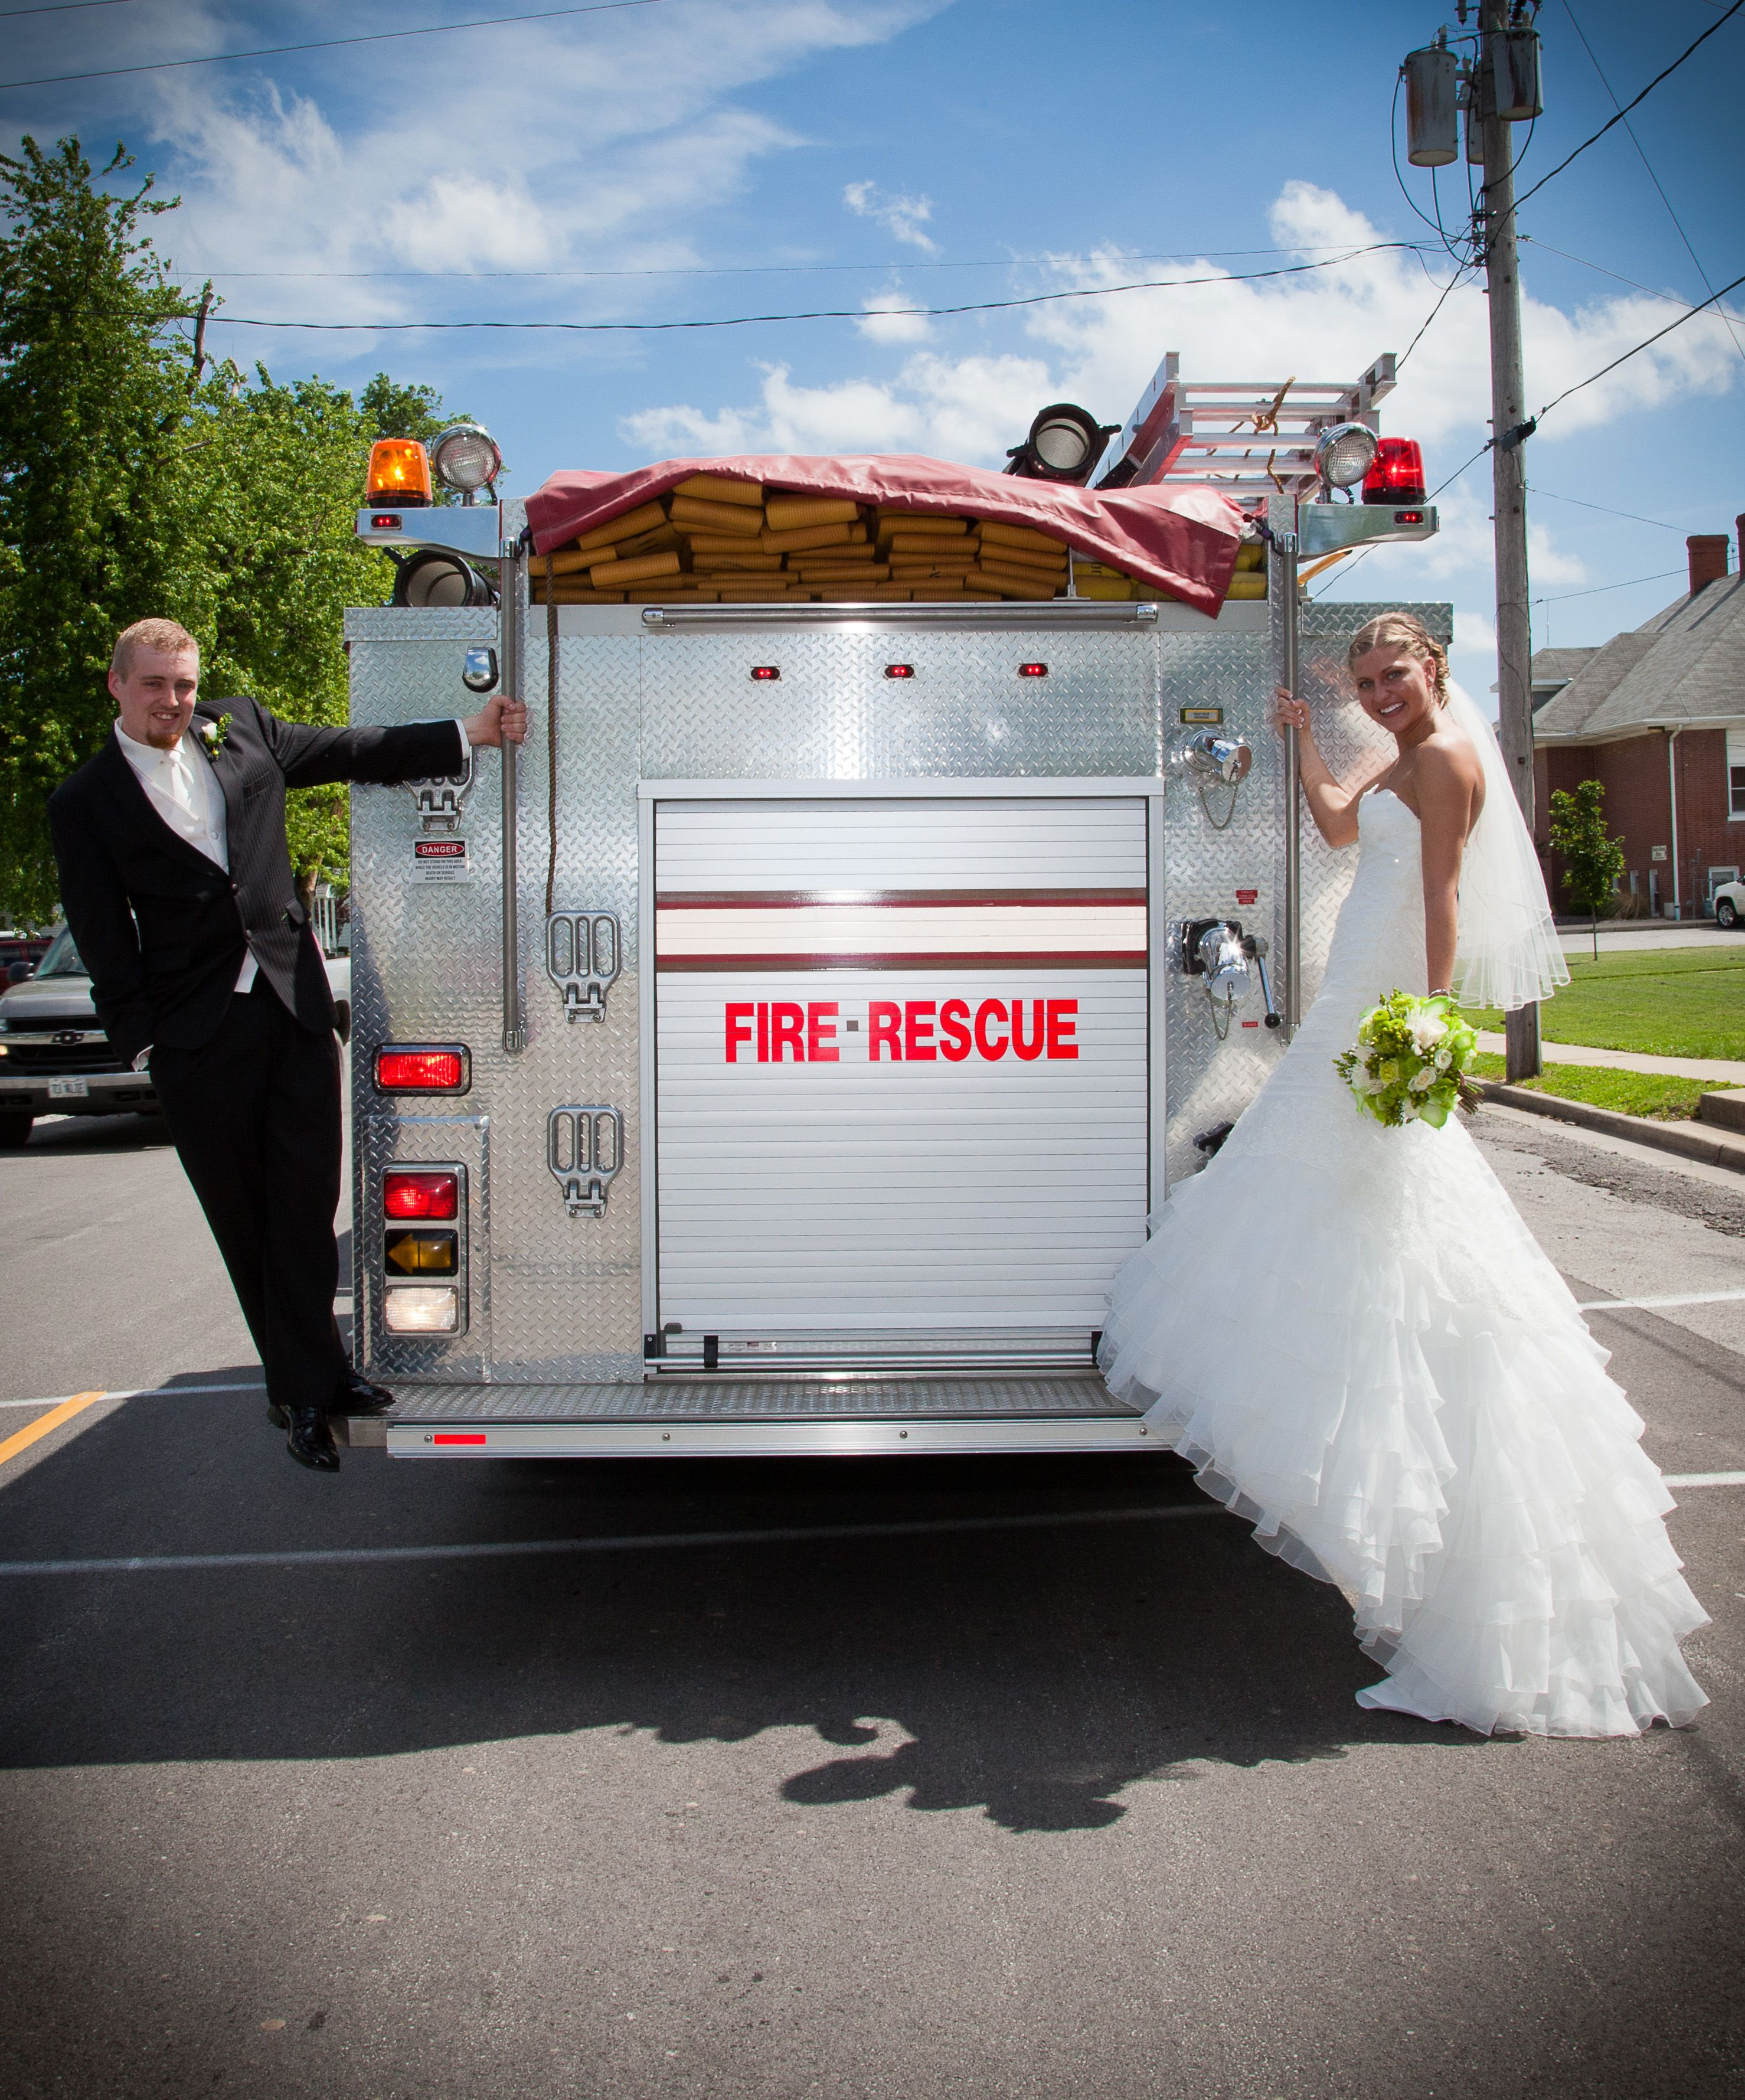 Firefighter Wedding Themes Ideas: We Left The Ceremony On A Firetruck, My Husband Is A